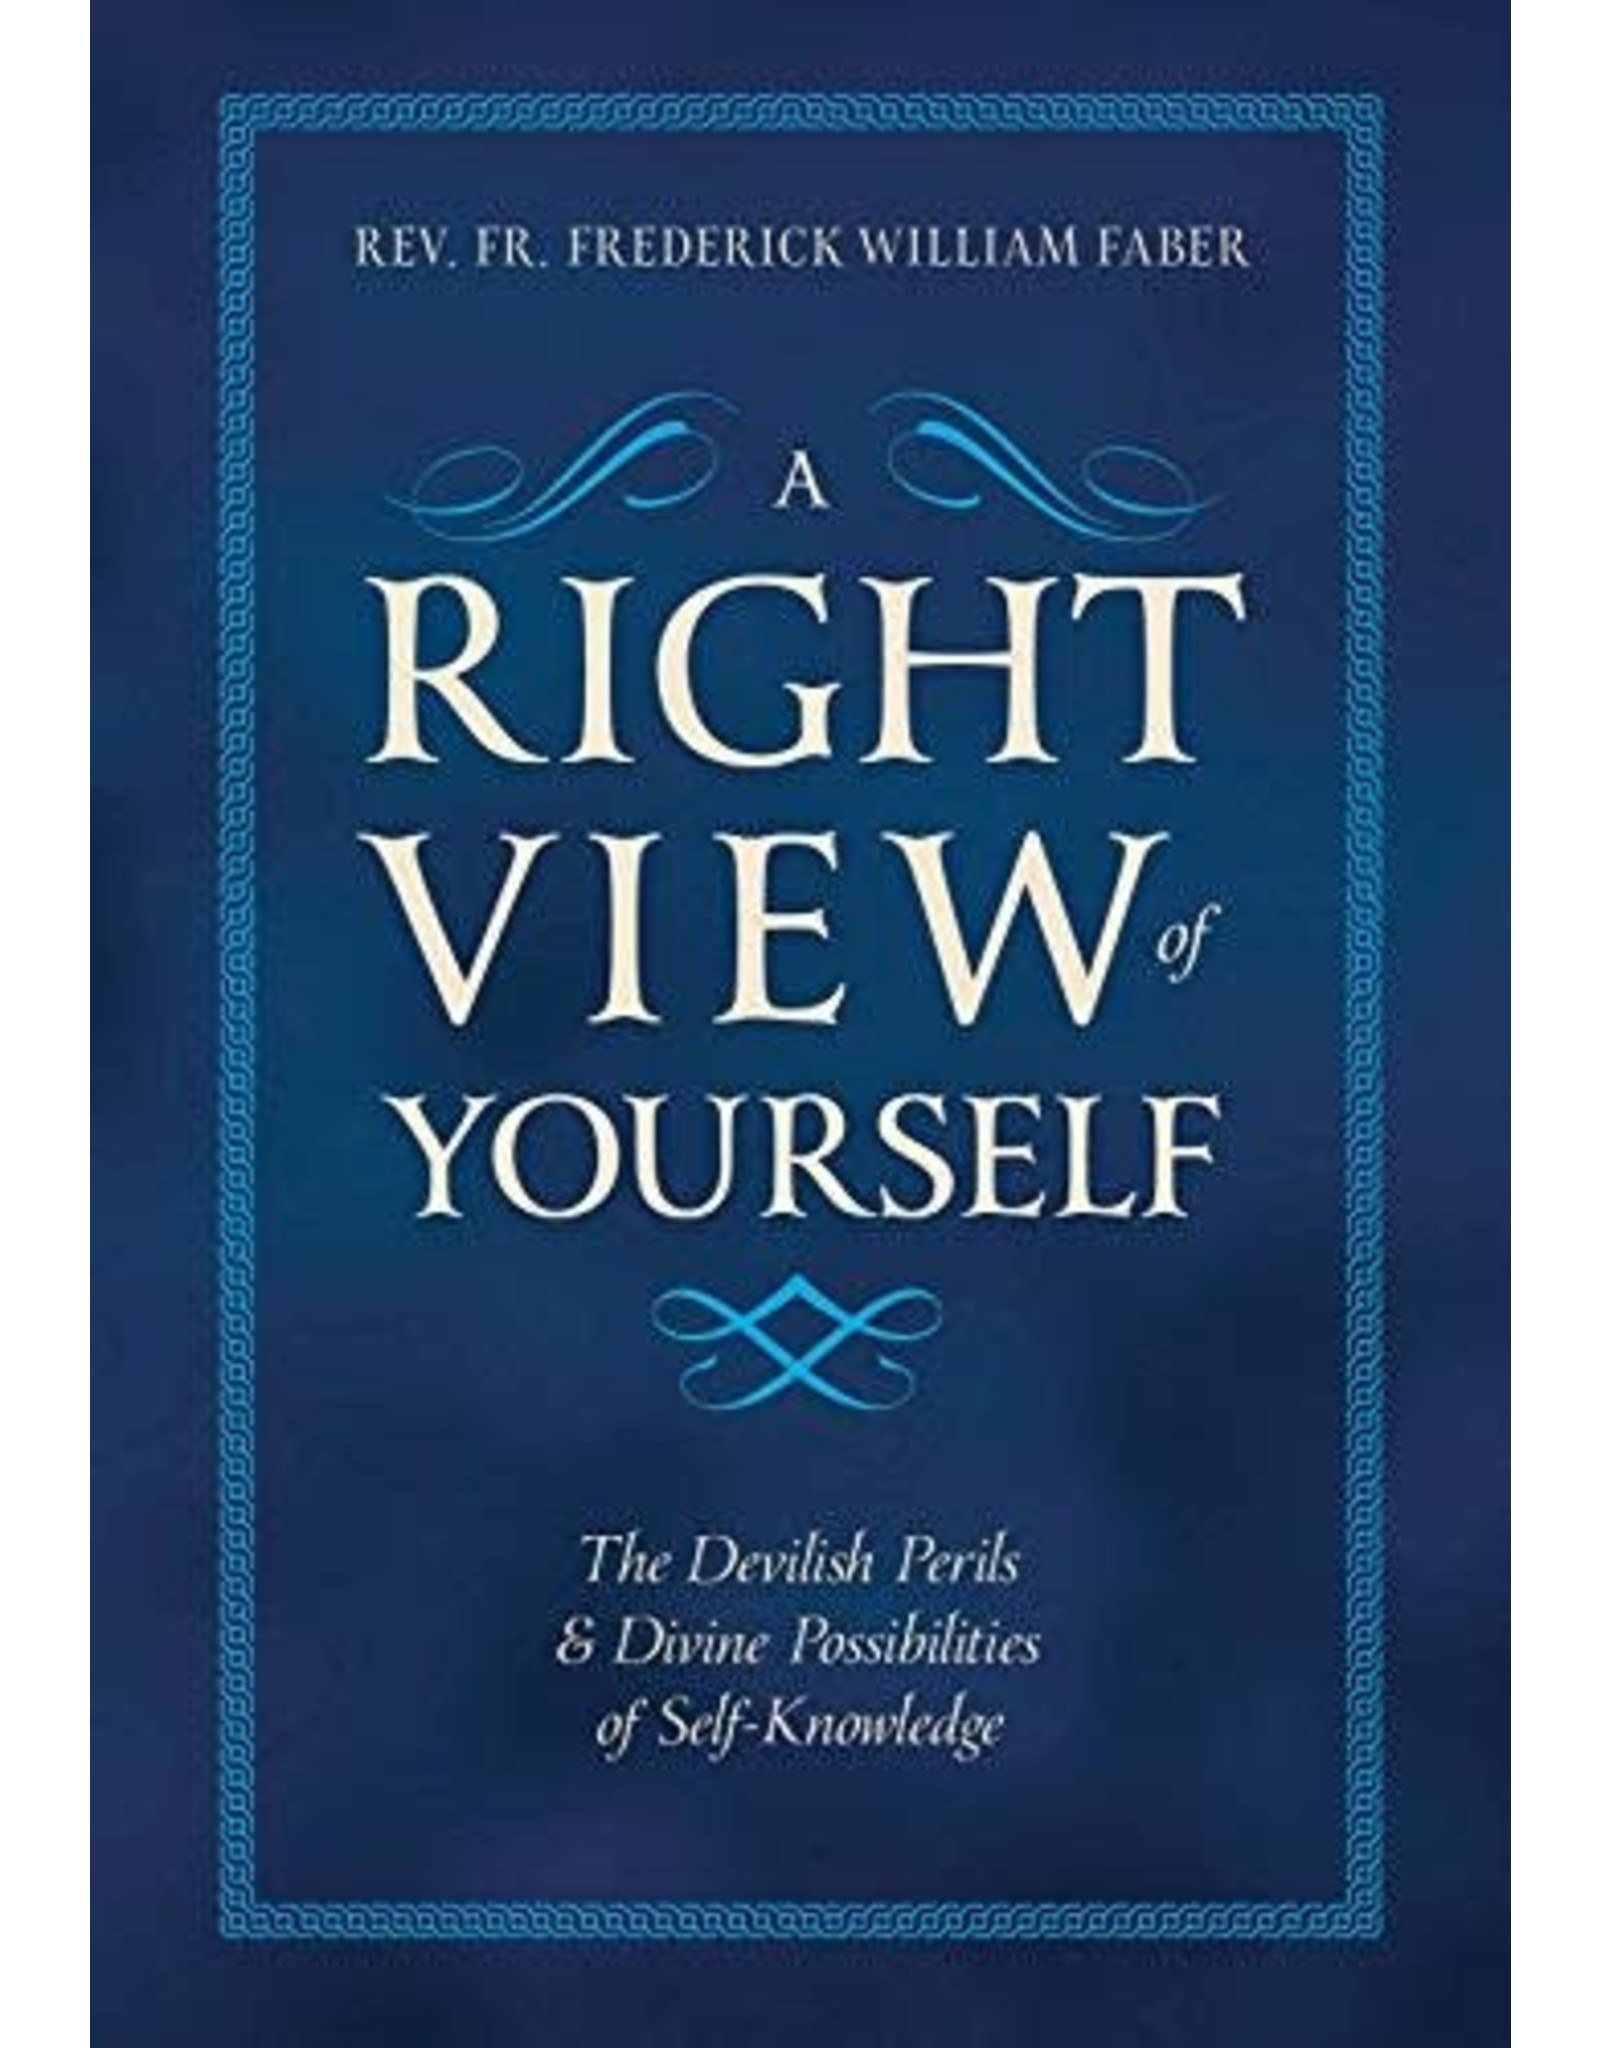 Tan Books A Right View Of Yourself: The Devilish Perils And Divine Possibilities Of Self-Knowledge by Rev. Fr. Frederick William Faber (Paperback)